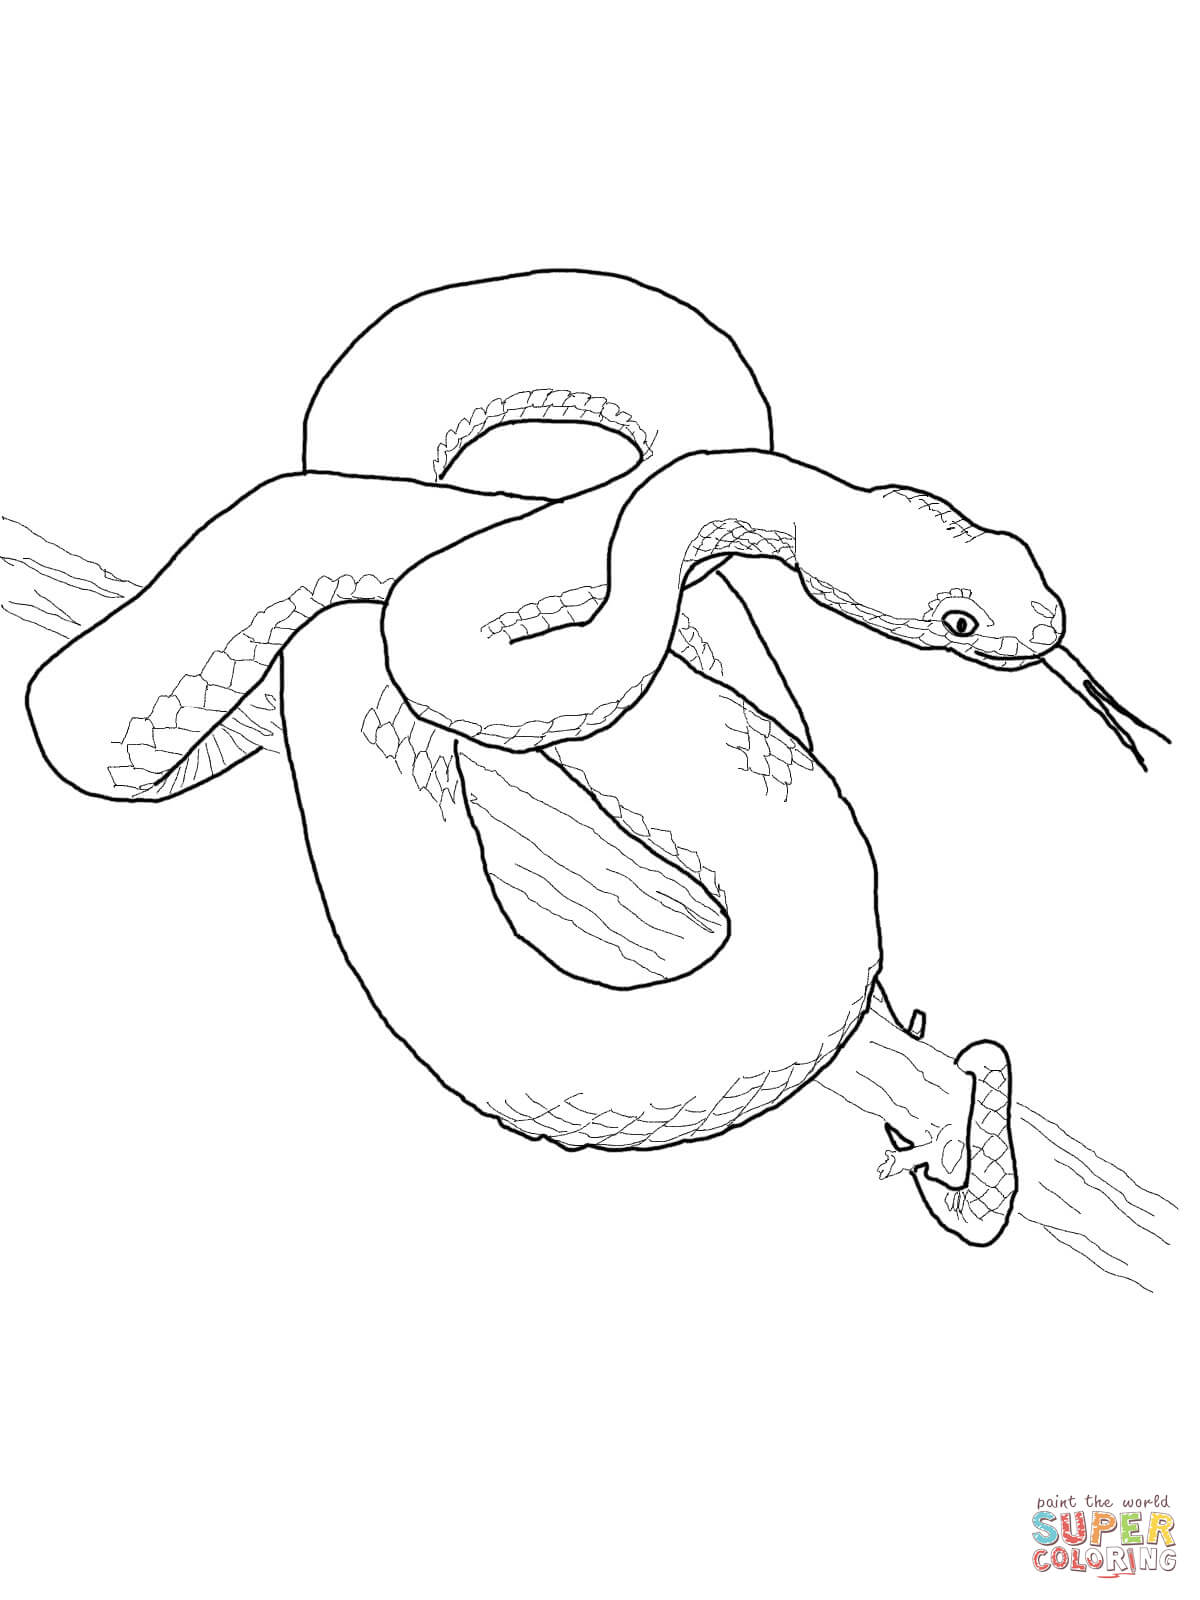 1200x1600 Pit Viper Coloring Page Free Printable Coloring Pages